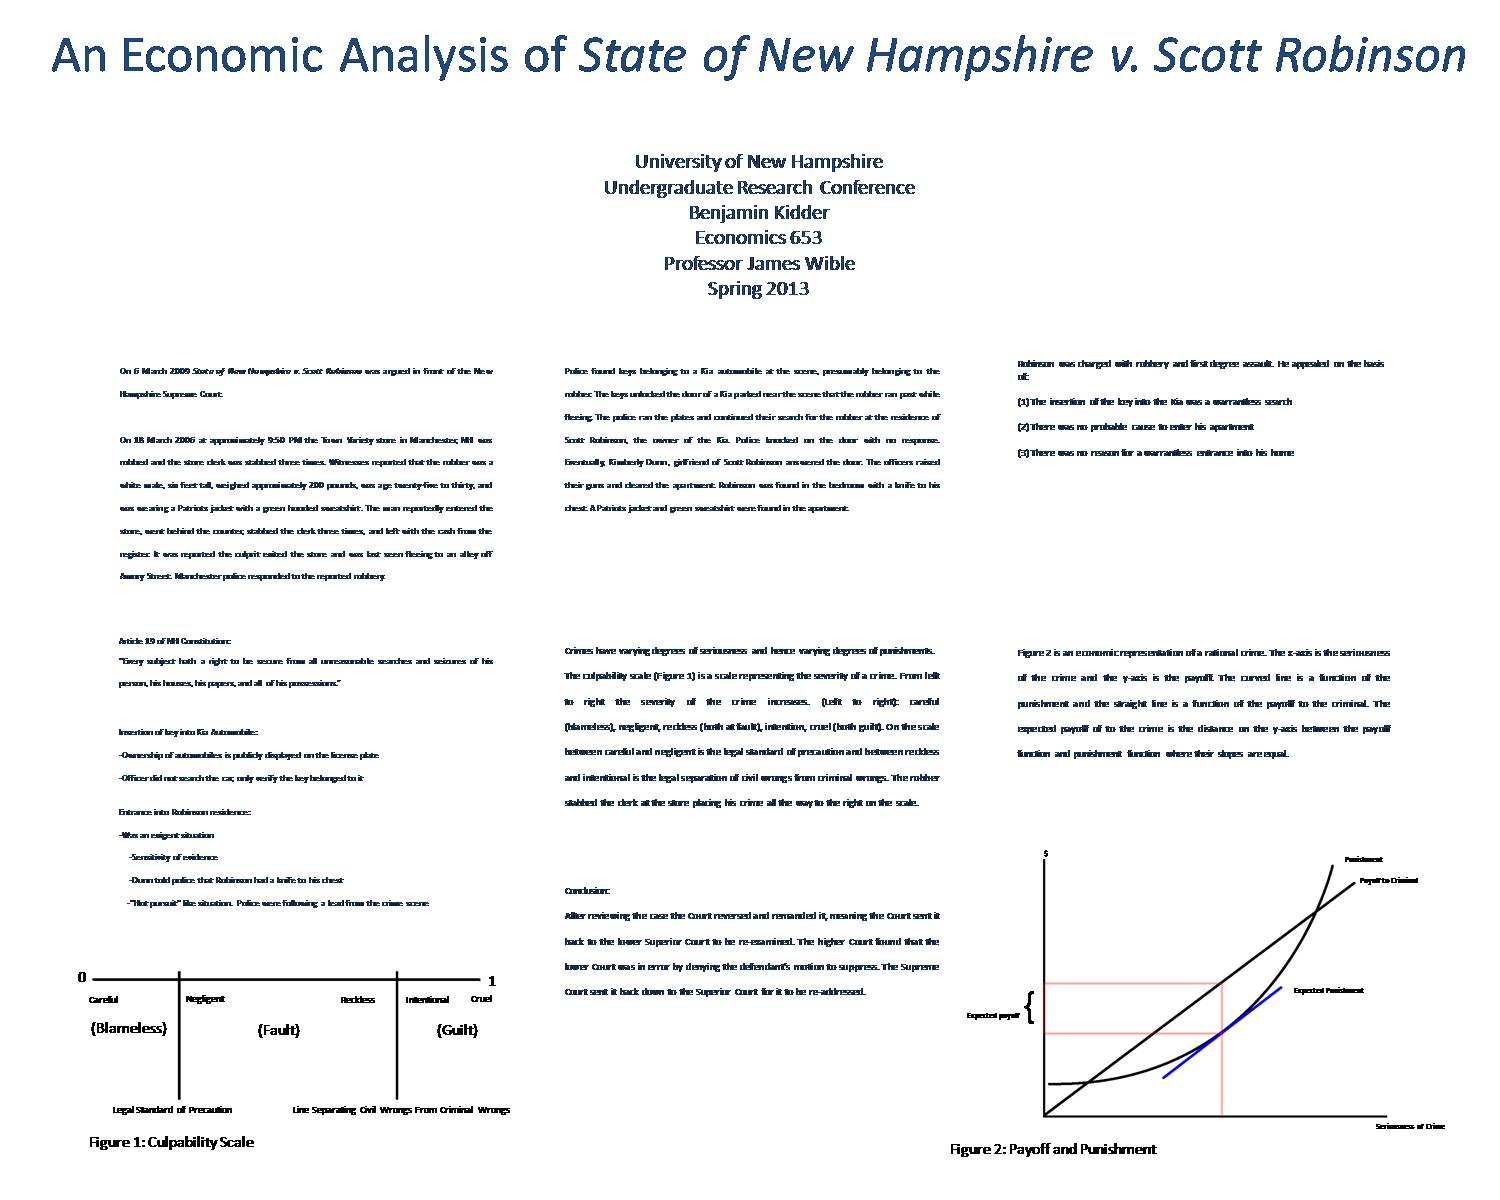 An Economics Analysis Of State Of New Hampshire V. Scott Robinson by benjaminpk